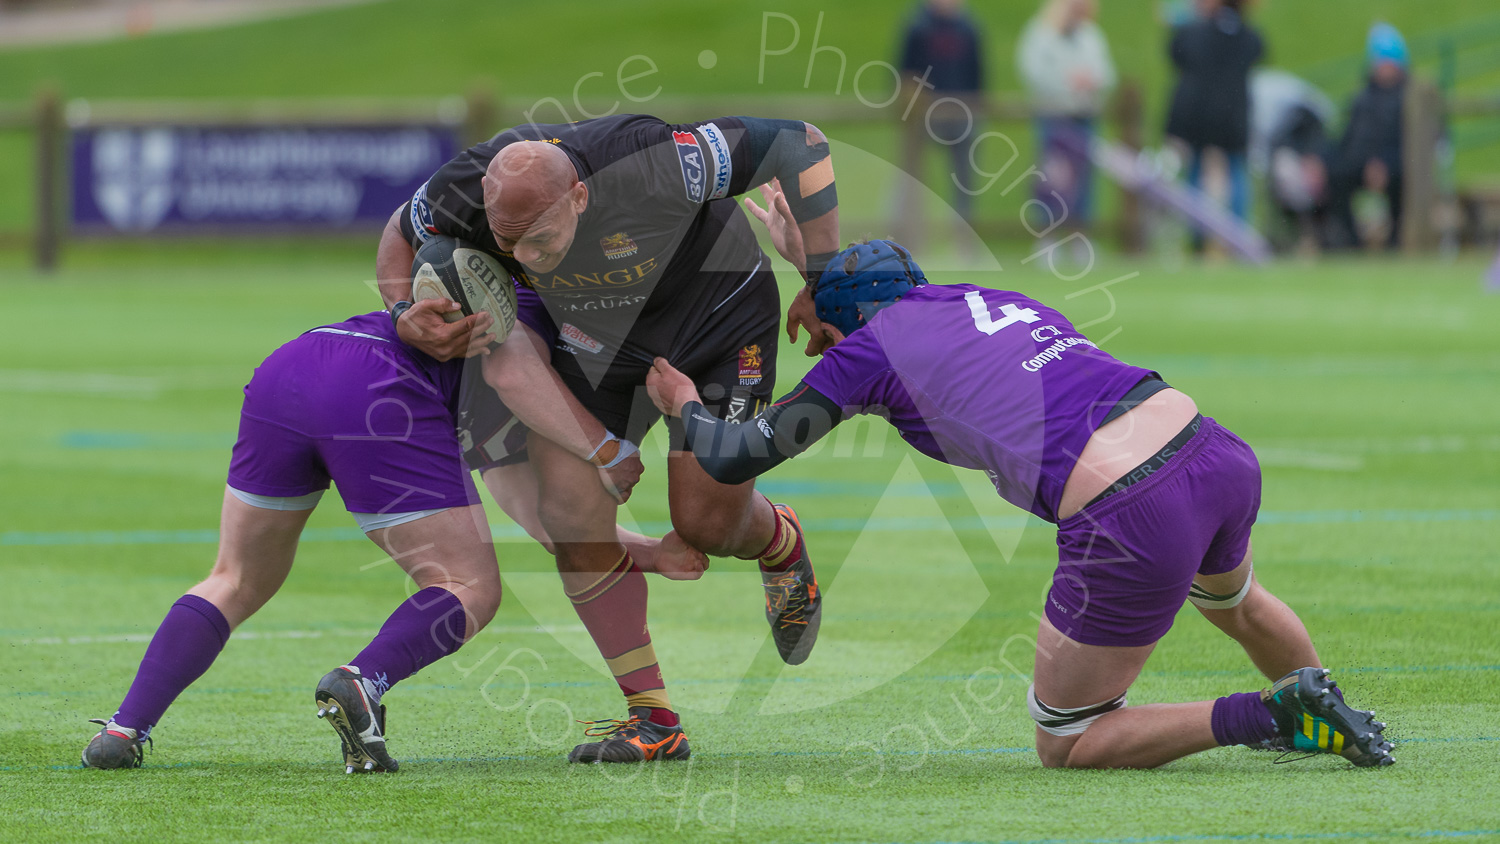 20190427 Loughborough vs Ampthill 1st XV #6029